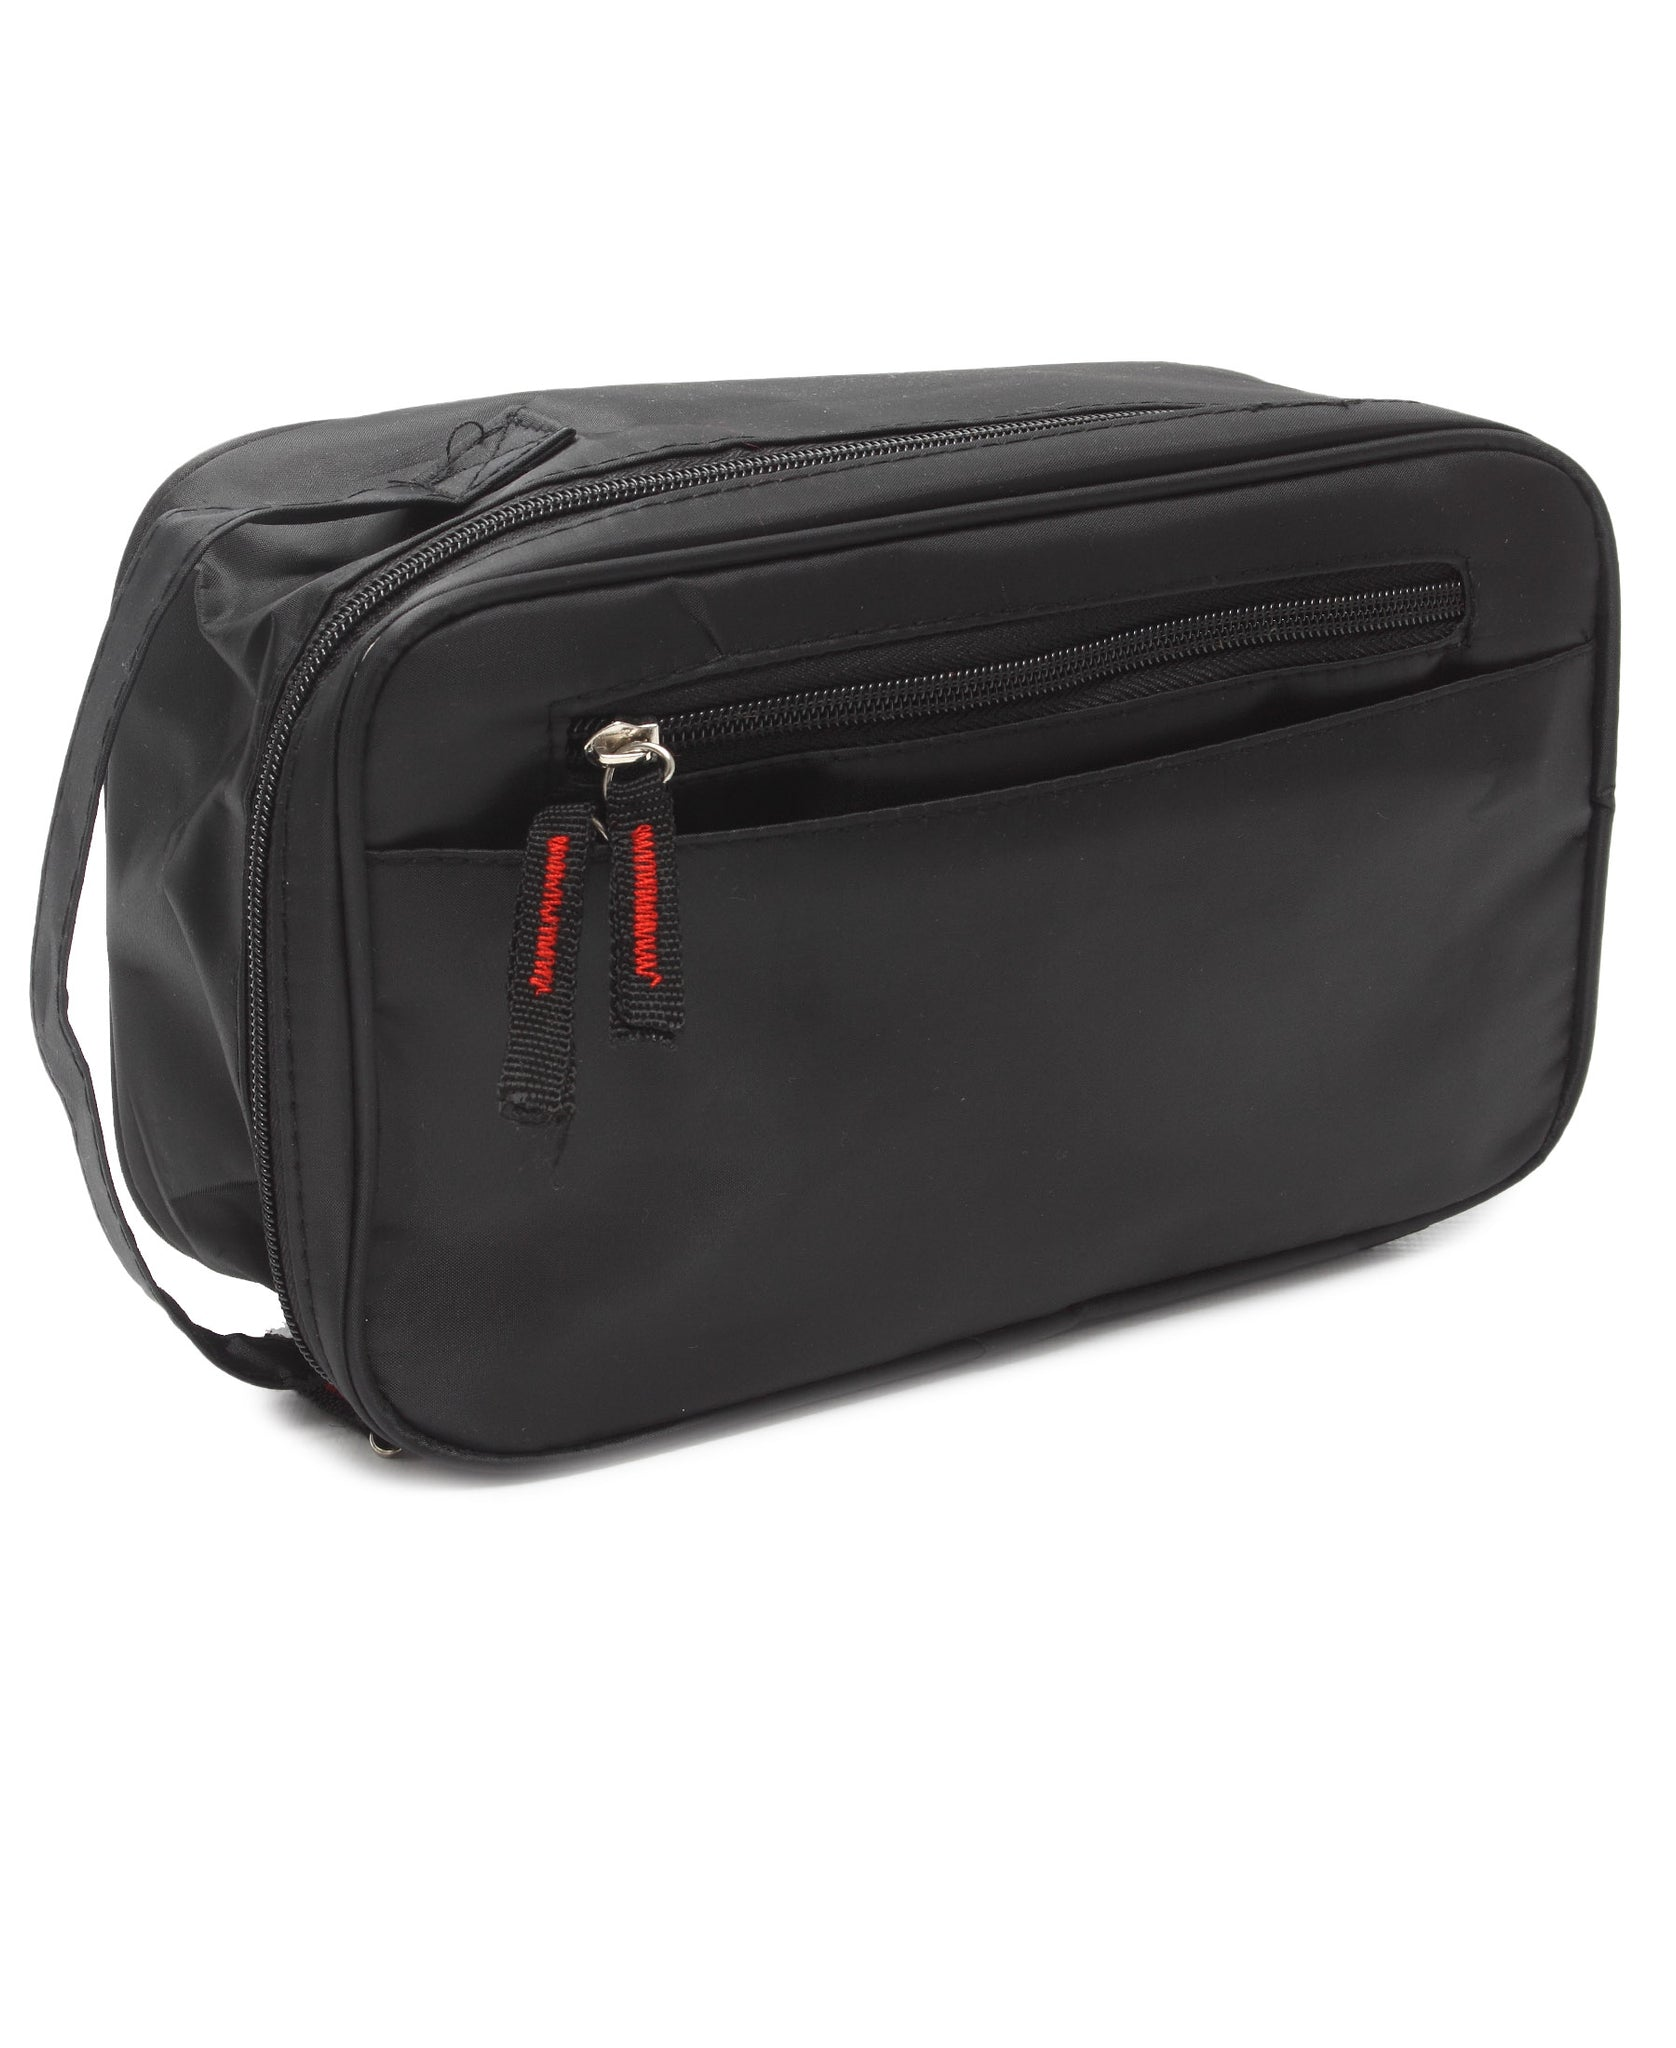 Men's Toiletry Bag - Black